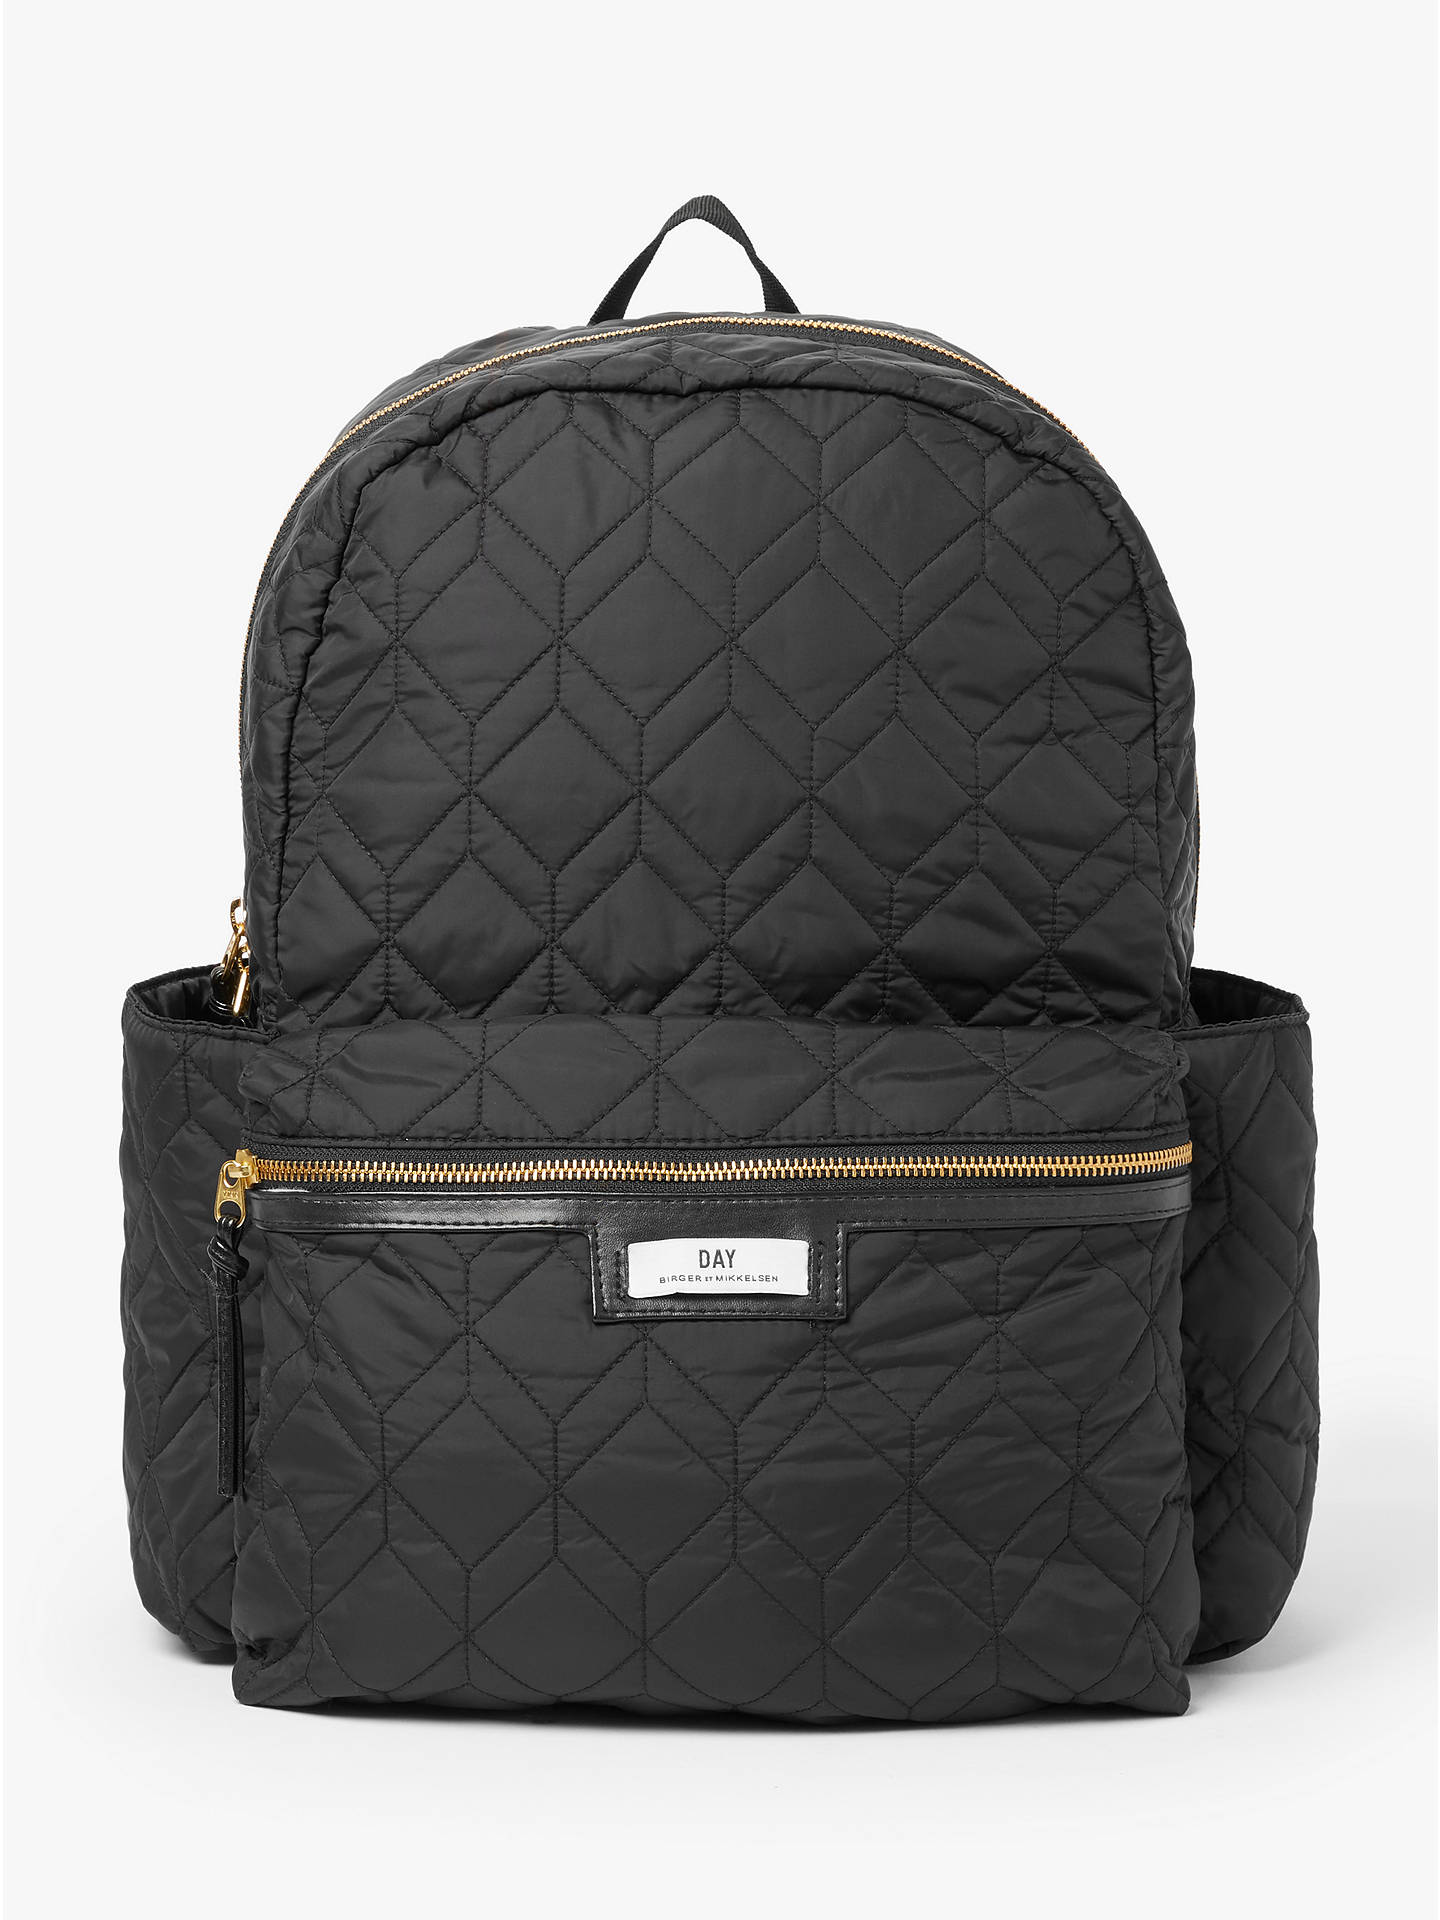 0102e96b4 DAY et Gweneth Hexagonal Quilted Backpack, Black